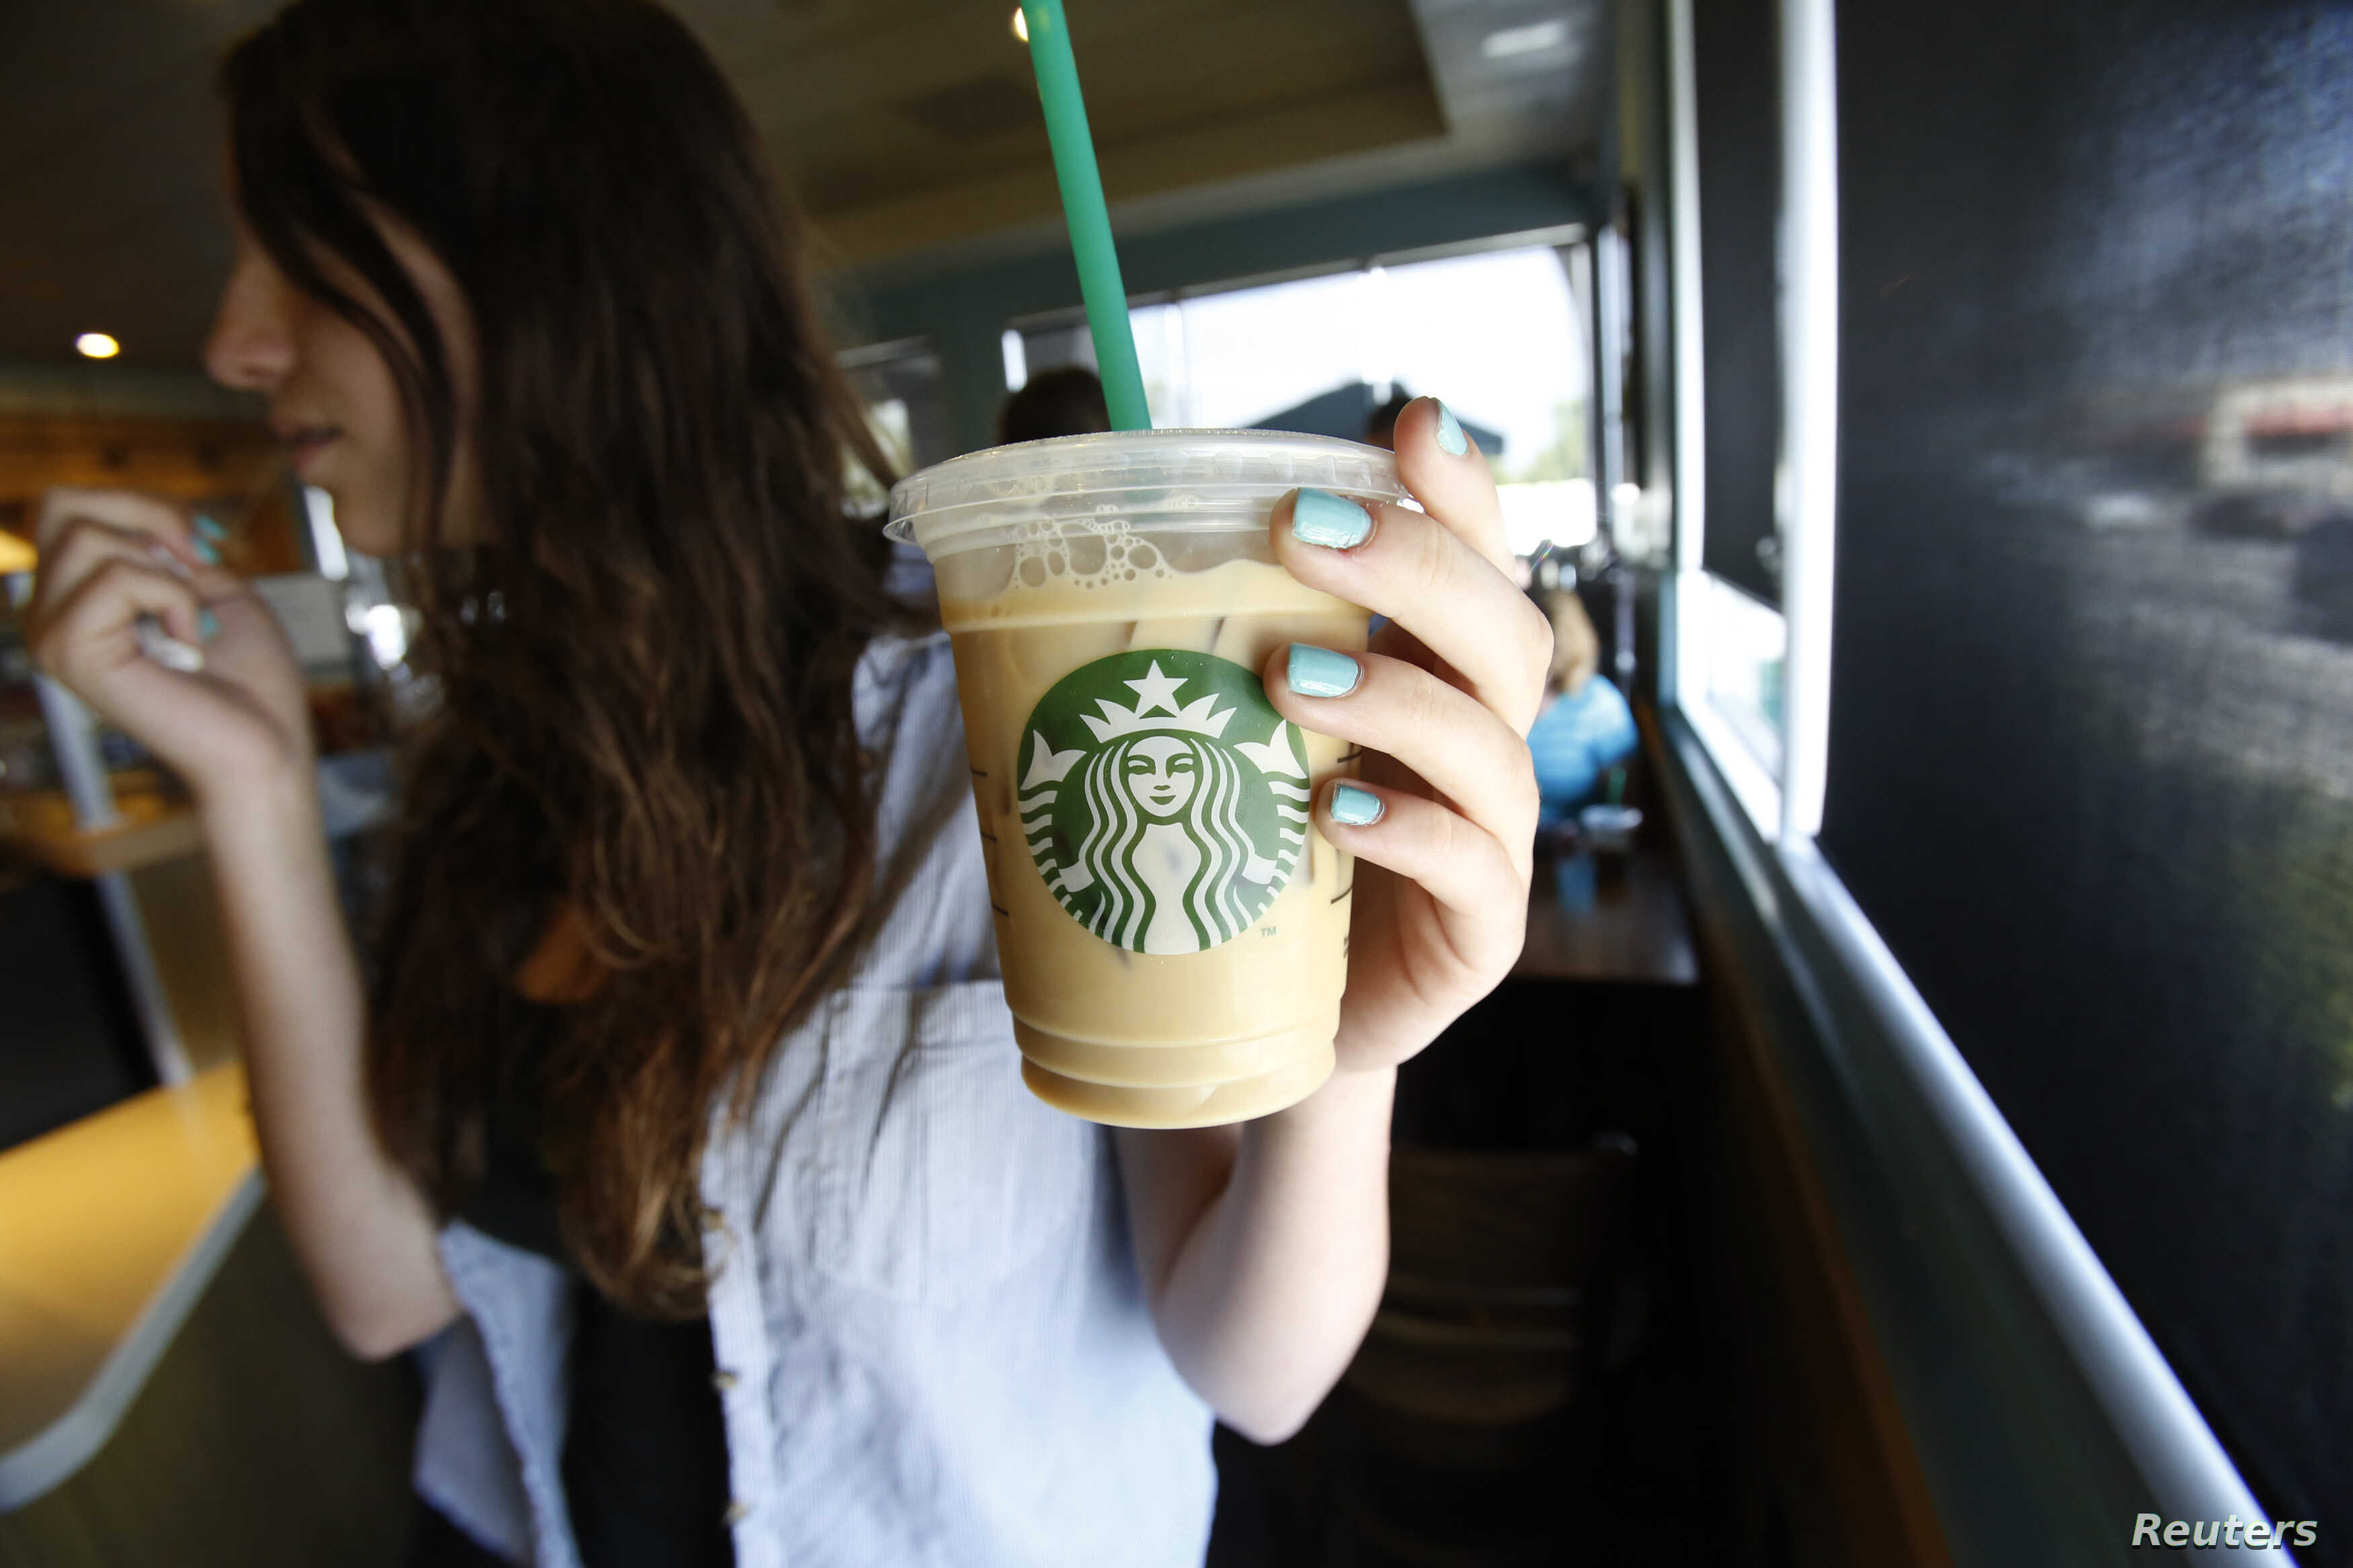 A patron holds an iced beverage at a Starbucks coffee store in Pasadena, Calif., July 25, 2013. Straws and stirrers are among the top 10 items found in coastal trash cleanups.